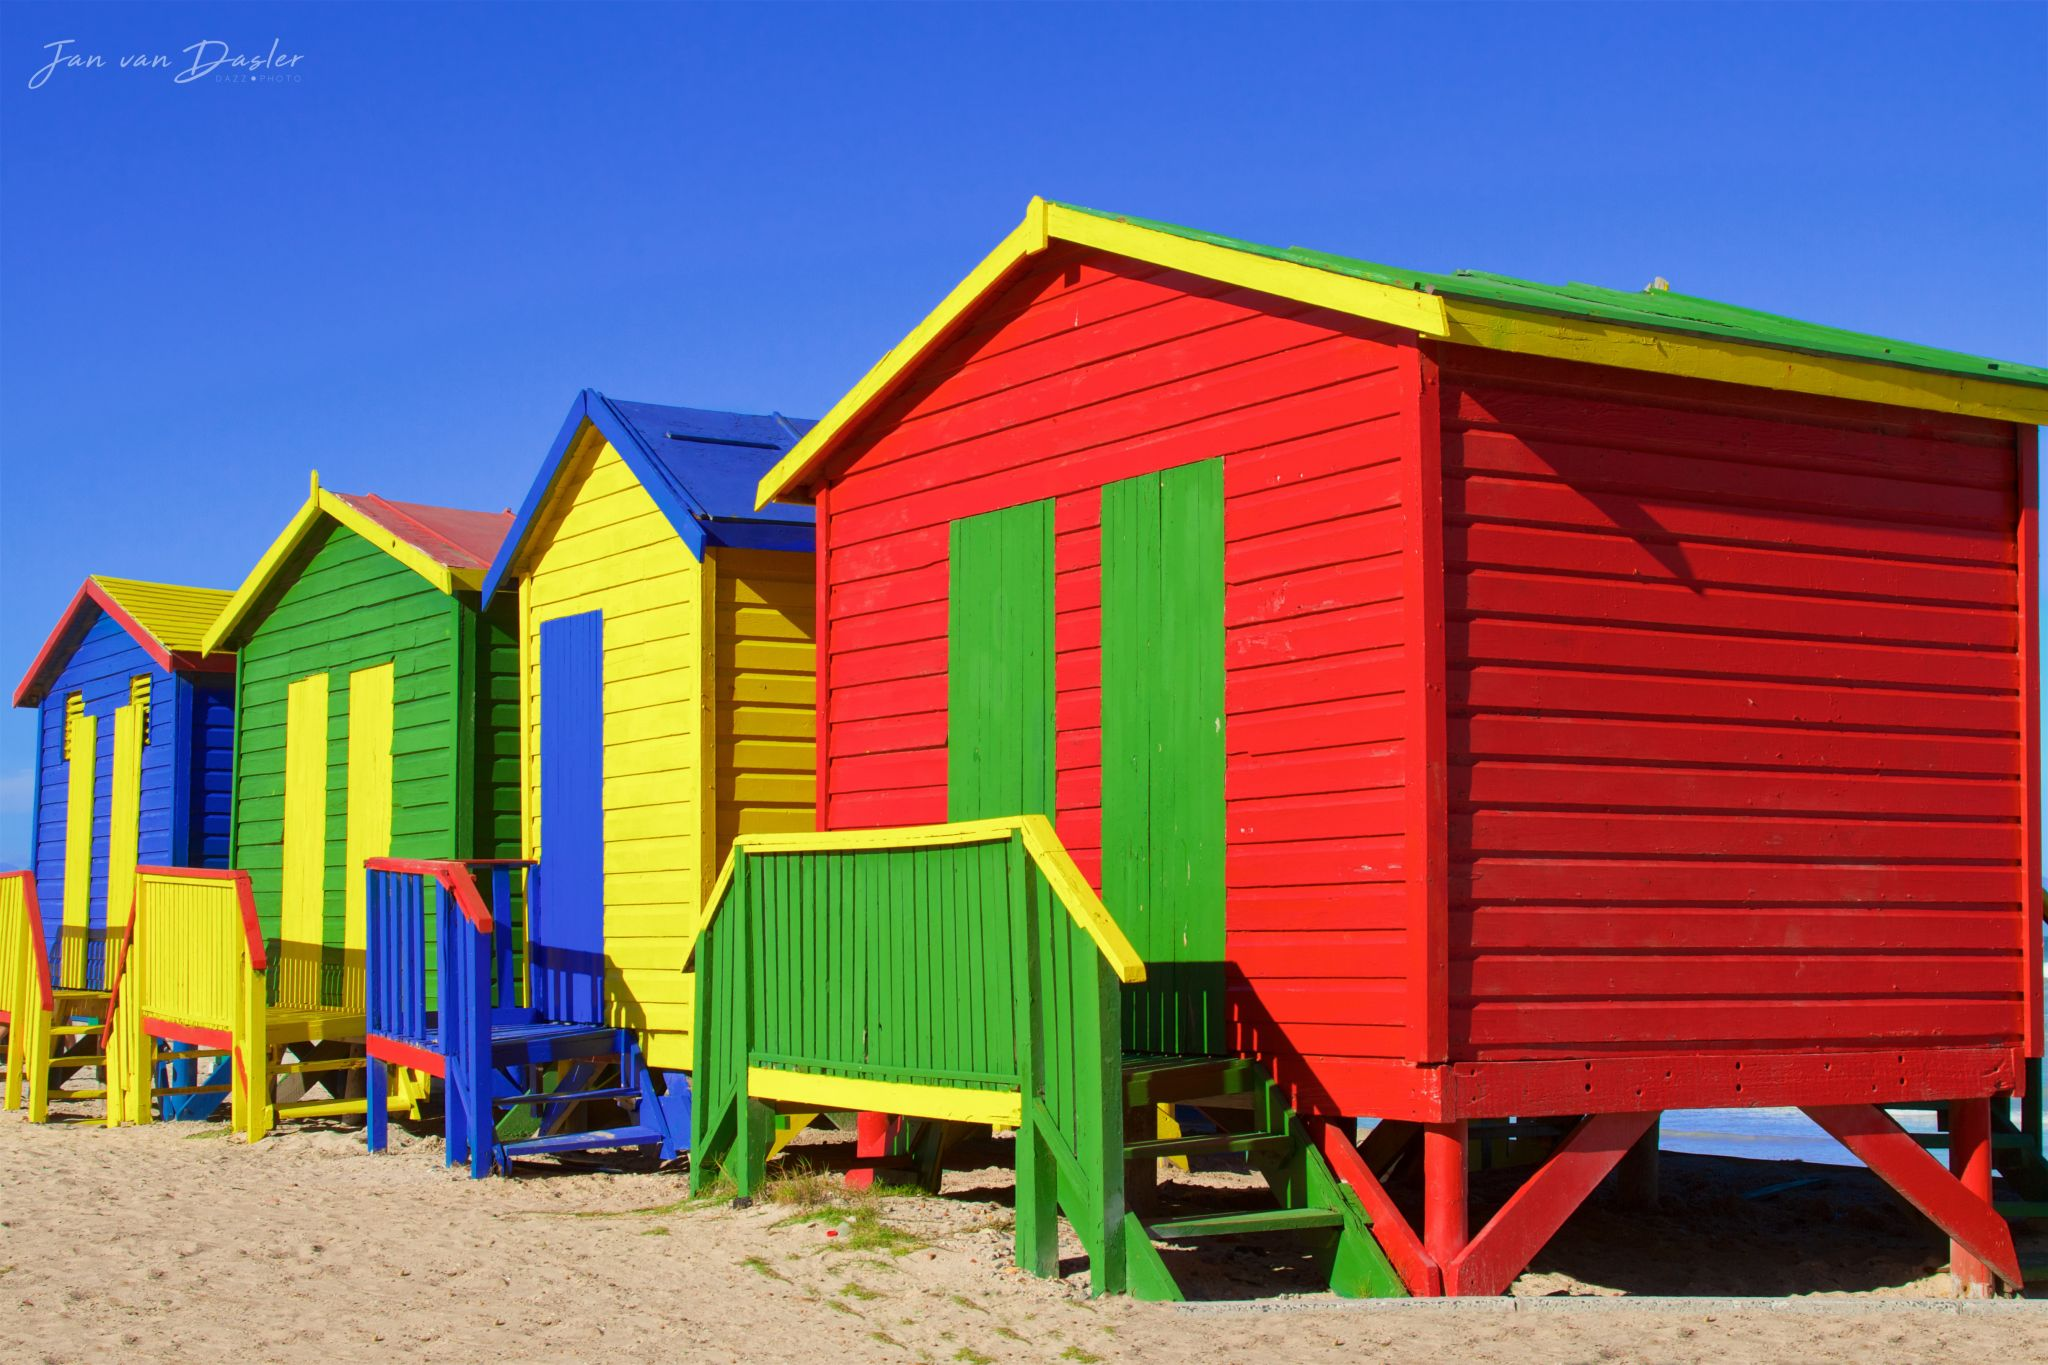 Colorful Muizenberg Beach Huts, South Africa